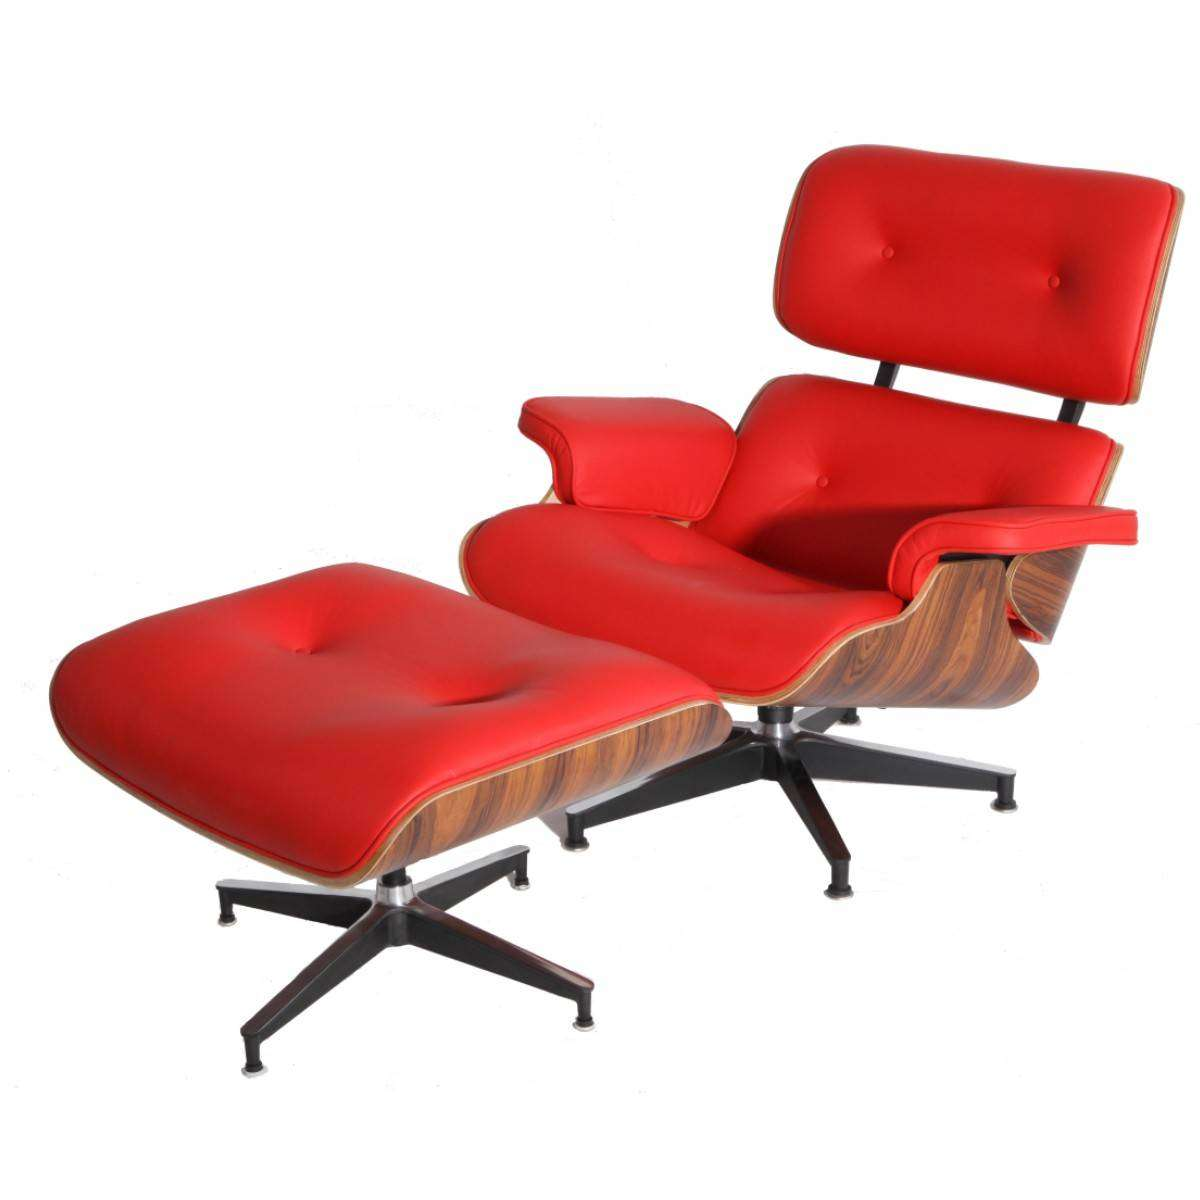 Eames Lounge Chair Reproduction Mod Lounge Chair & Ottoman Red Palisander